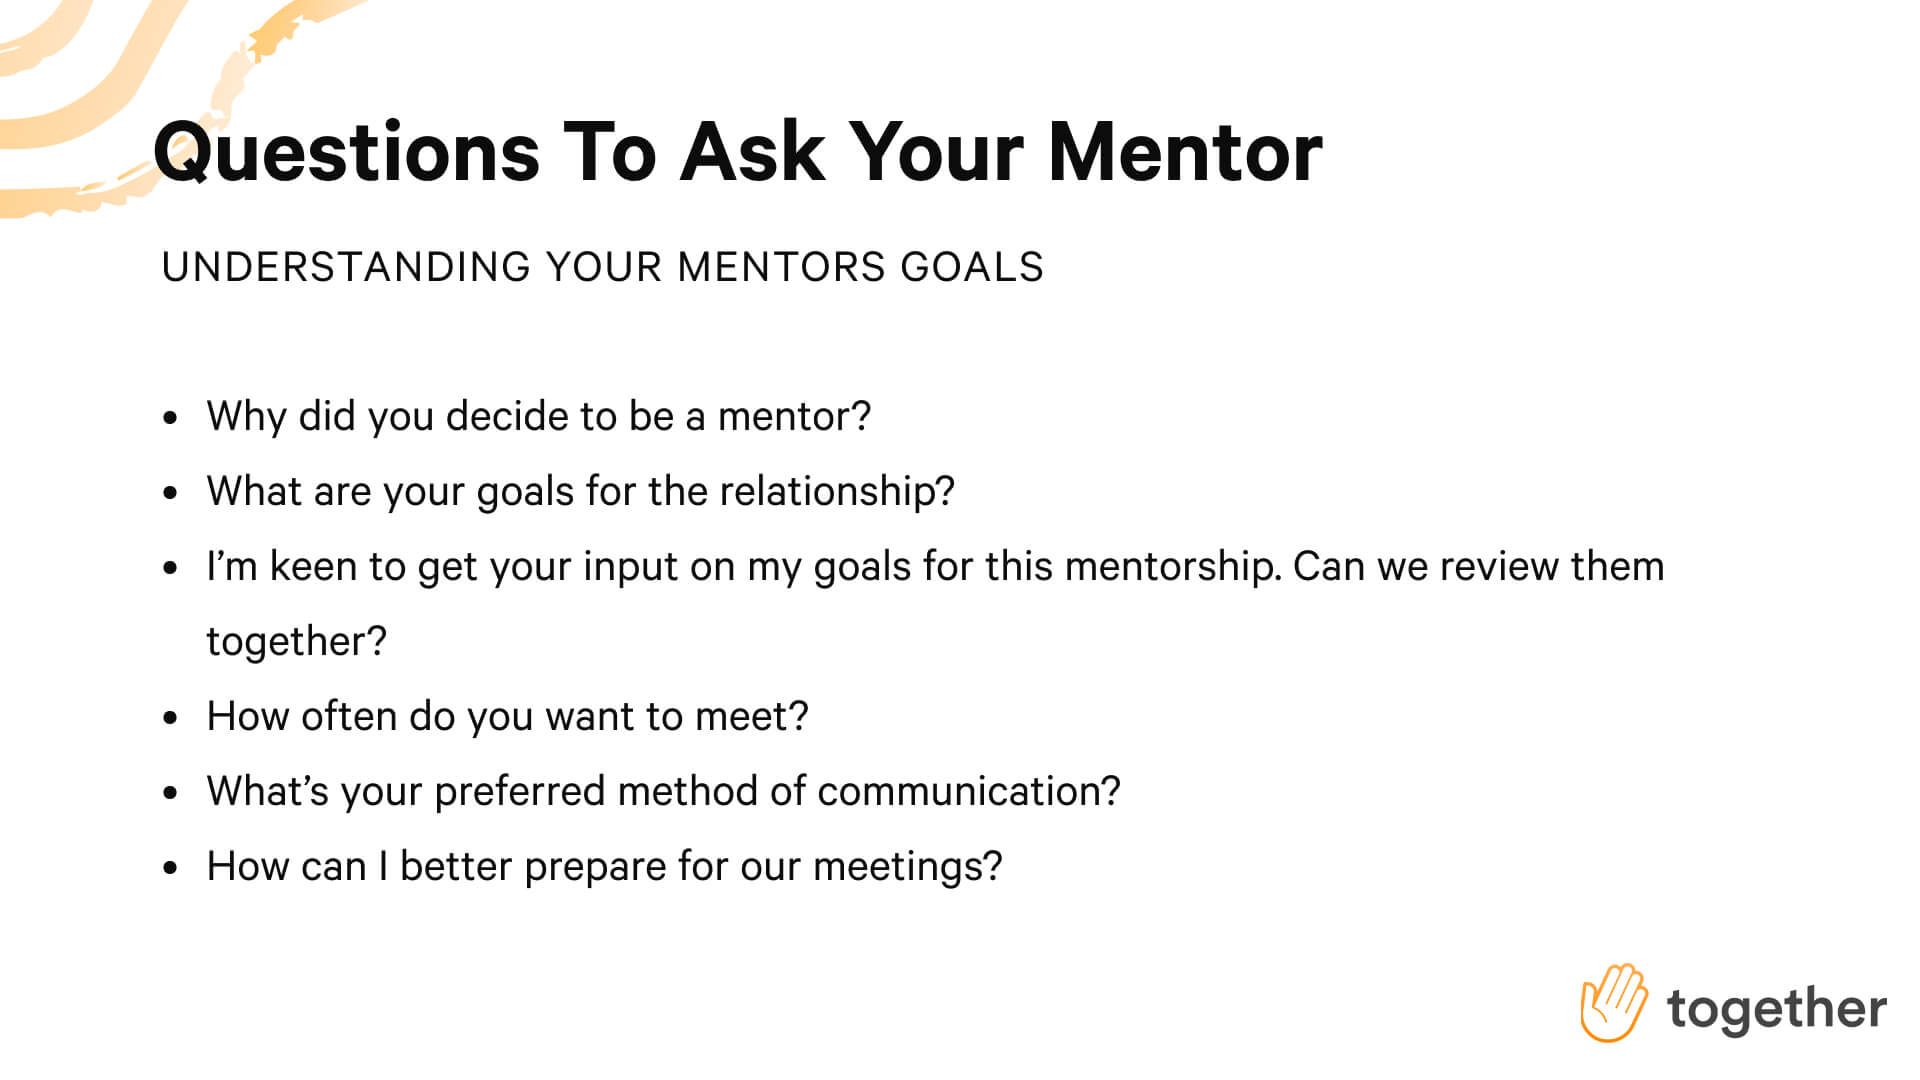 Questions to ask your mentor to understand their goals